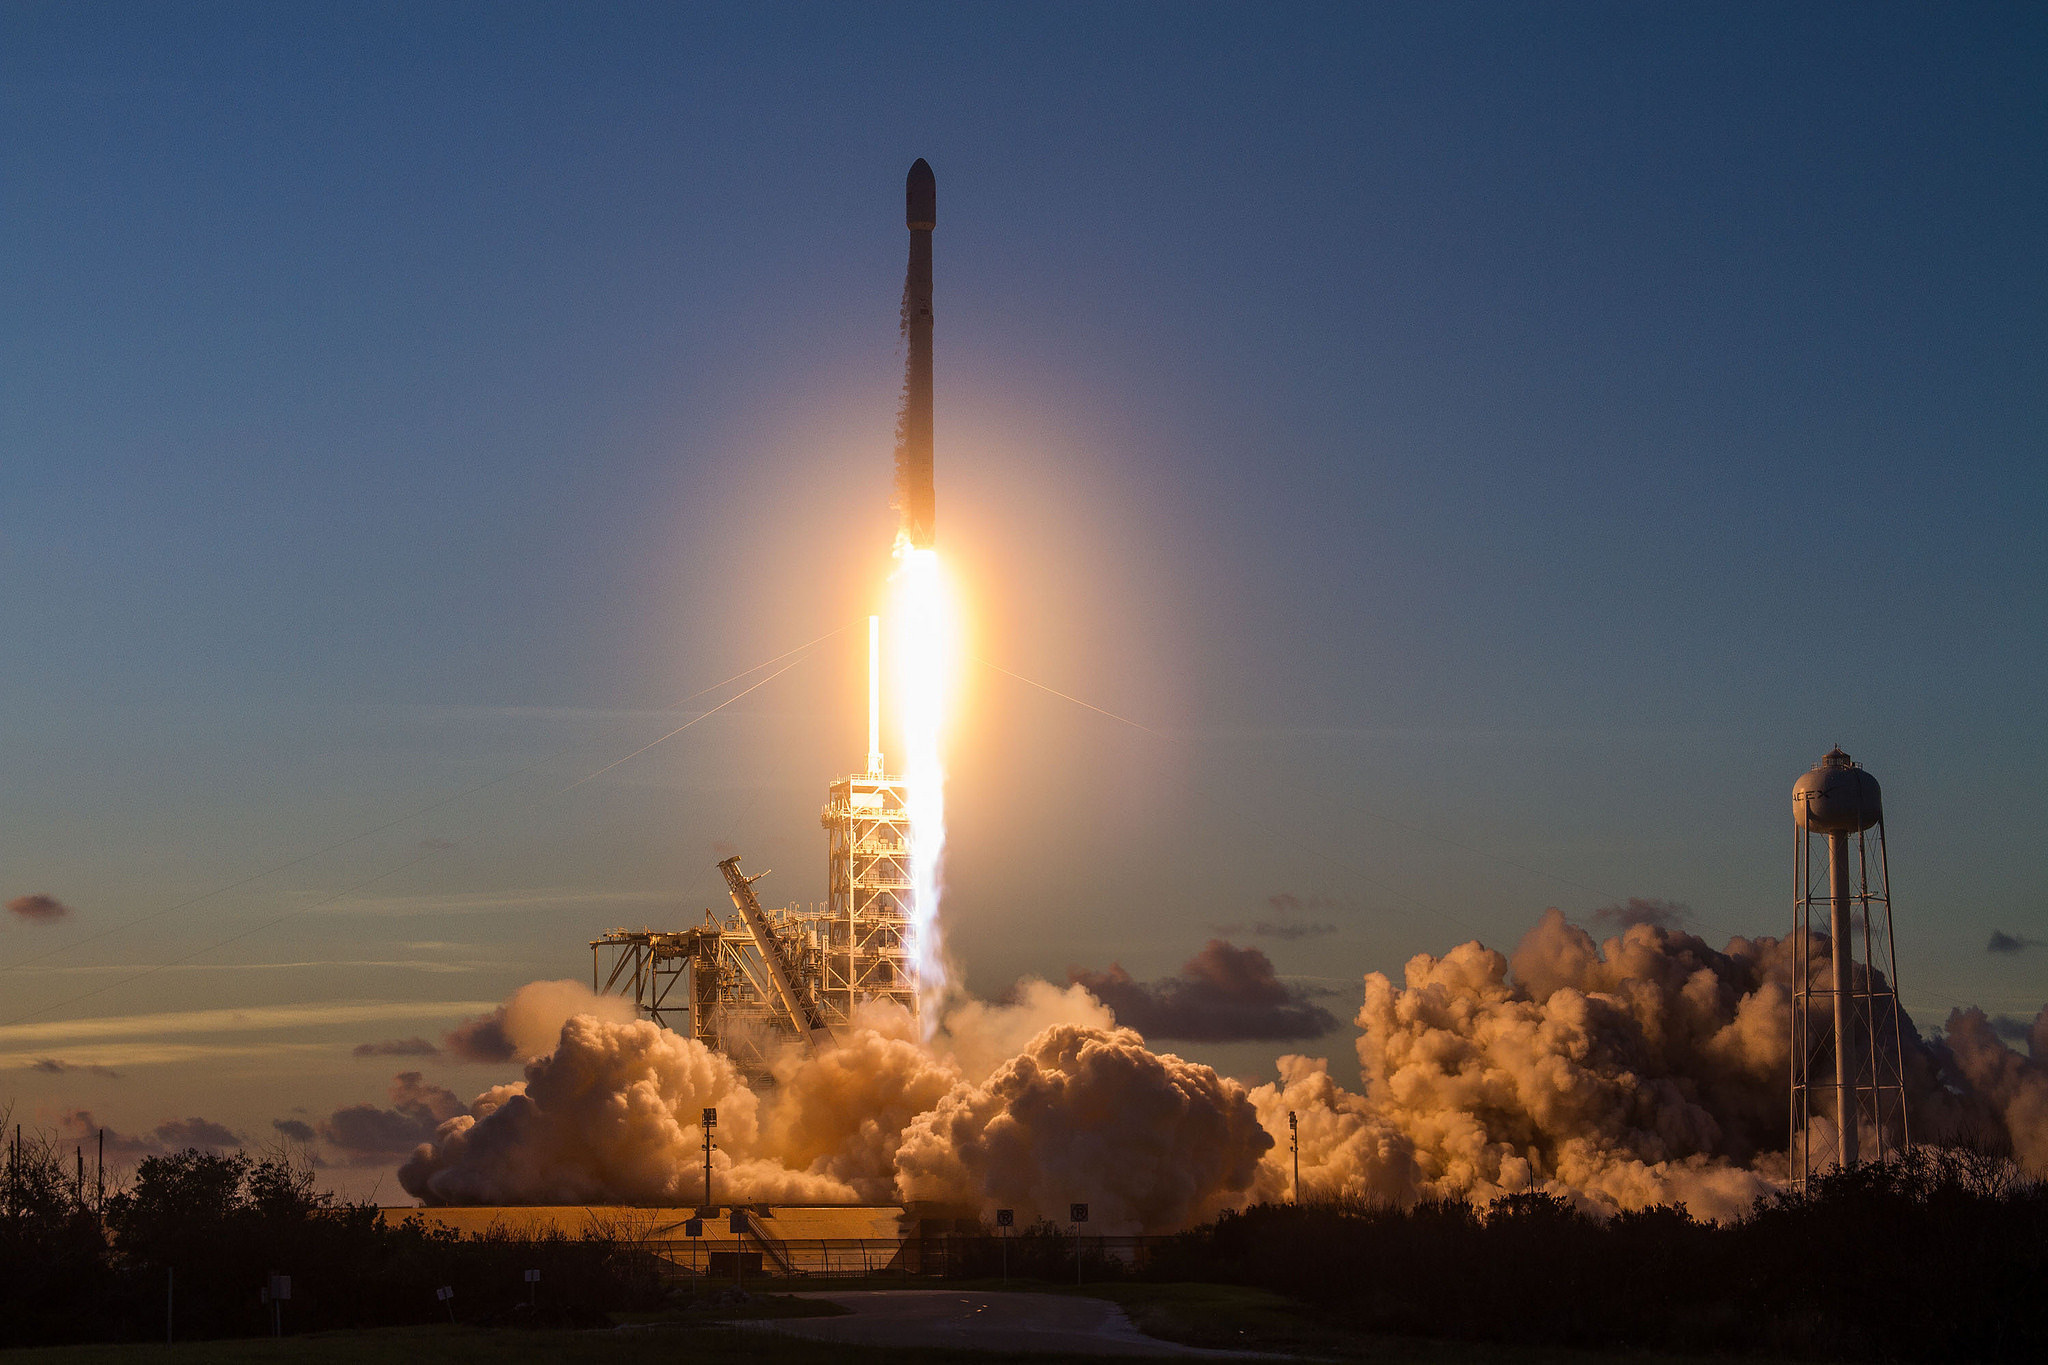 The U.S. Air Force's 45th Space Wing supported the SpaceX Falcon 9 launch of the Echostar 105/SES-11 communications satellite on Oct. 11, 2017. (SpaceX)